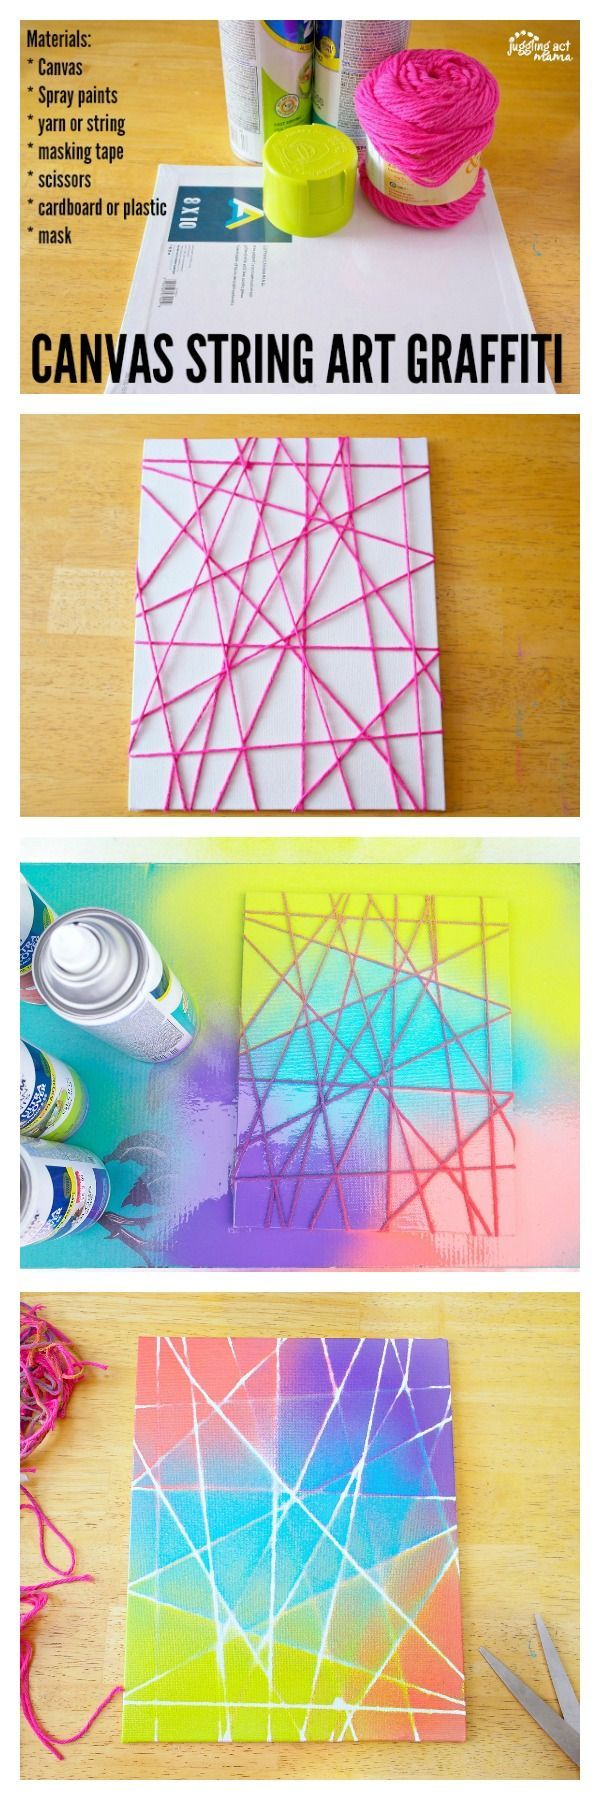 This Canvas String Art Graffiti project is fun for kids and adults alike. While this is a spray paint project, you can use